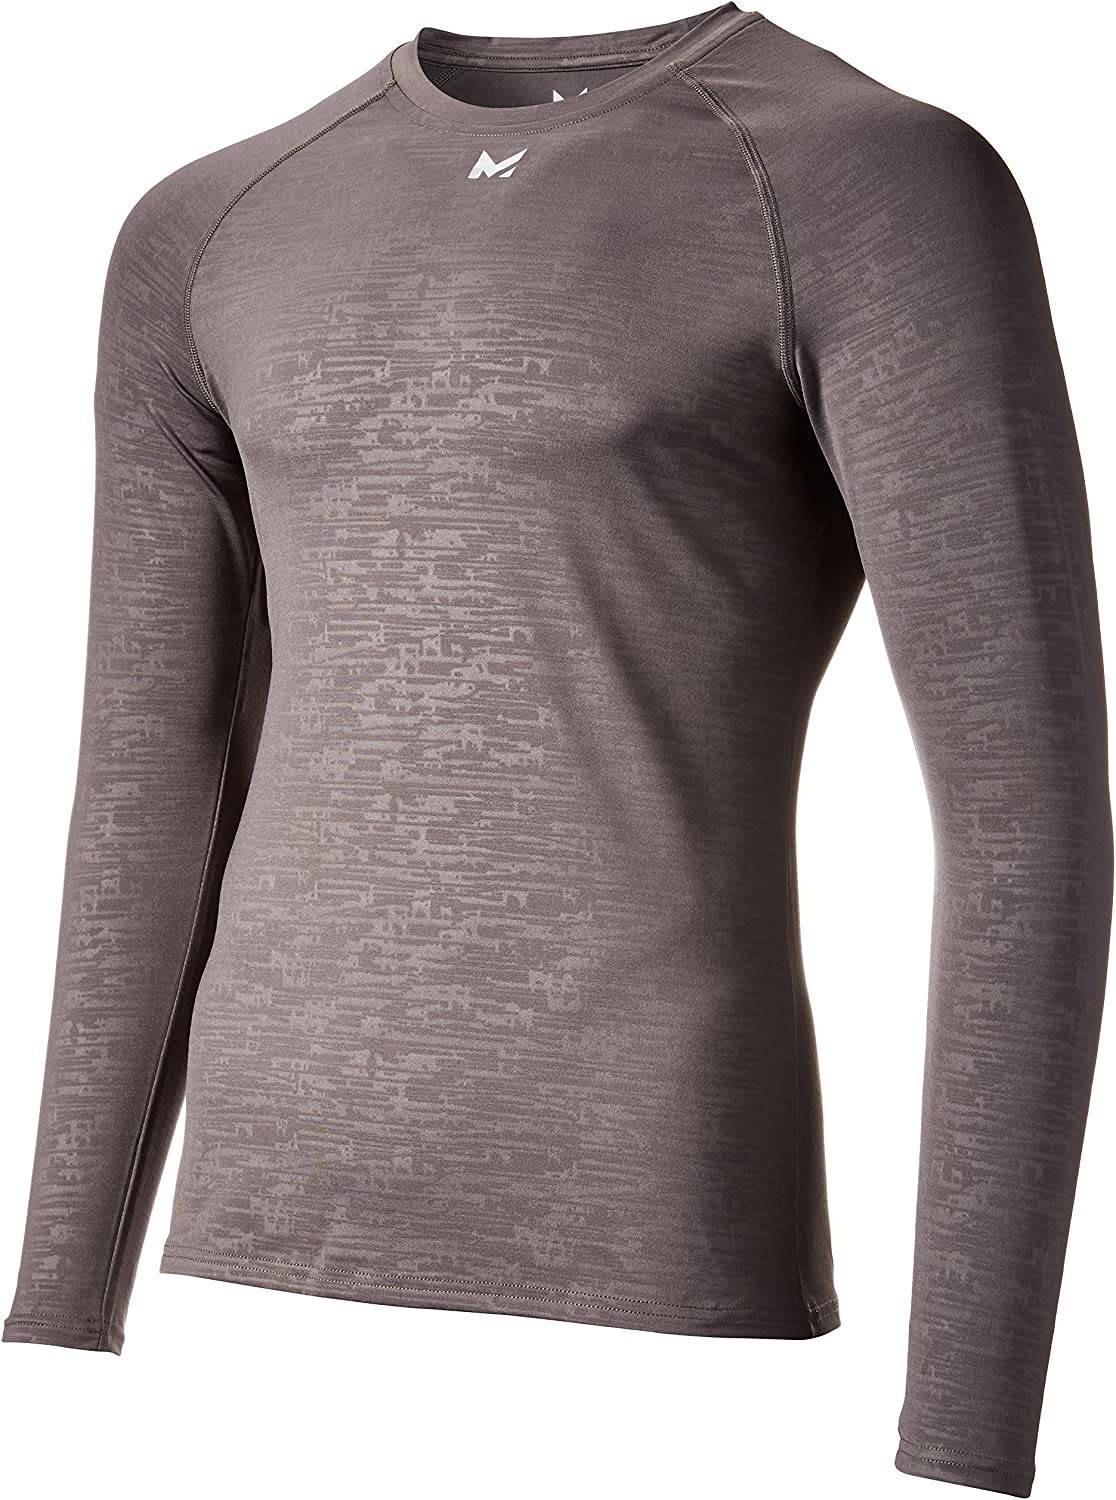 Mission Athletecare Men's A surprise price is realized Special sale item Vaporactive To Long Compression Sleeve